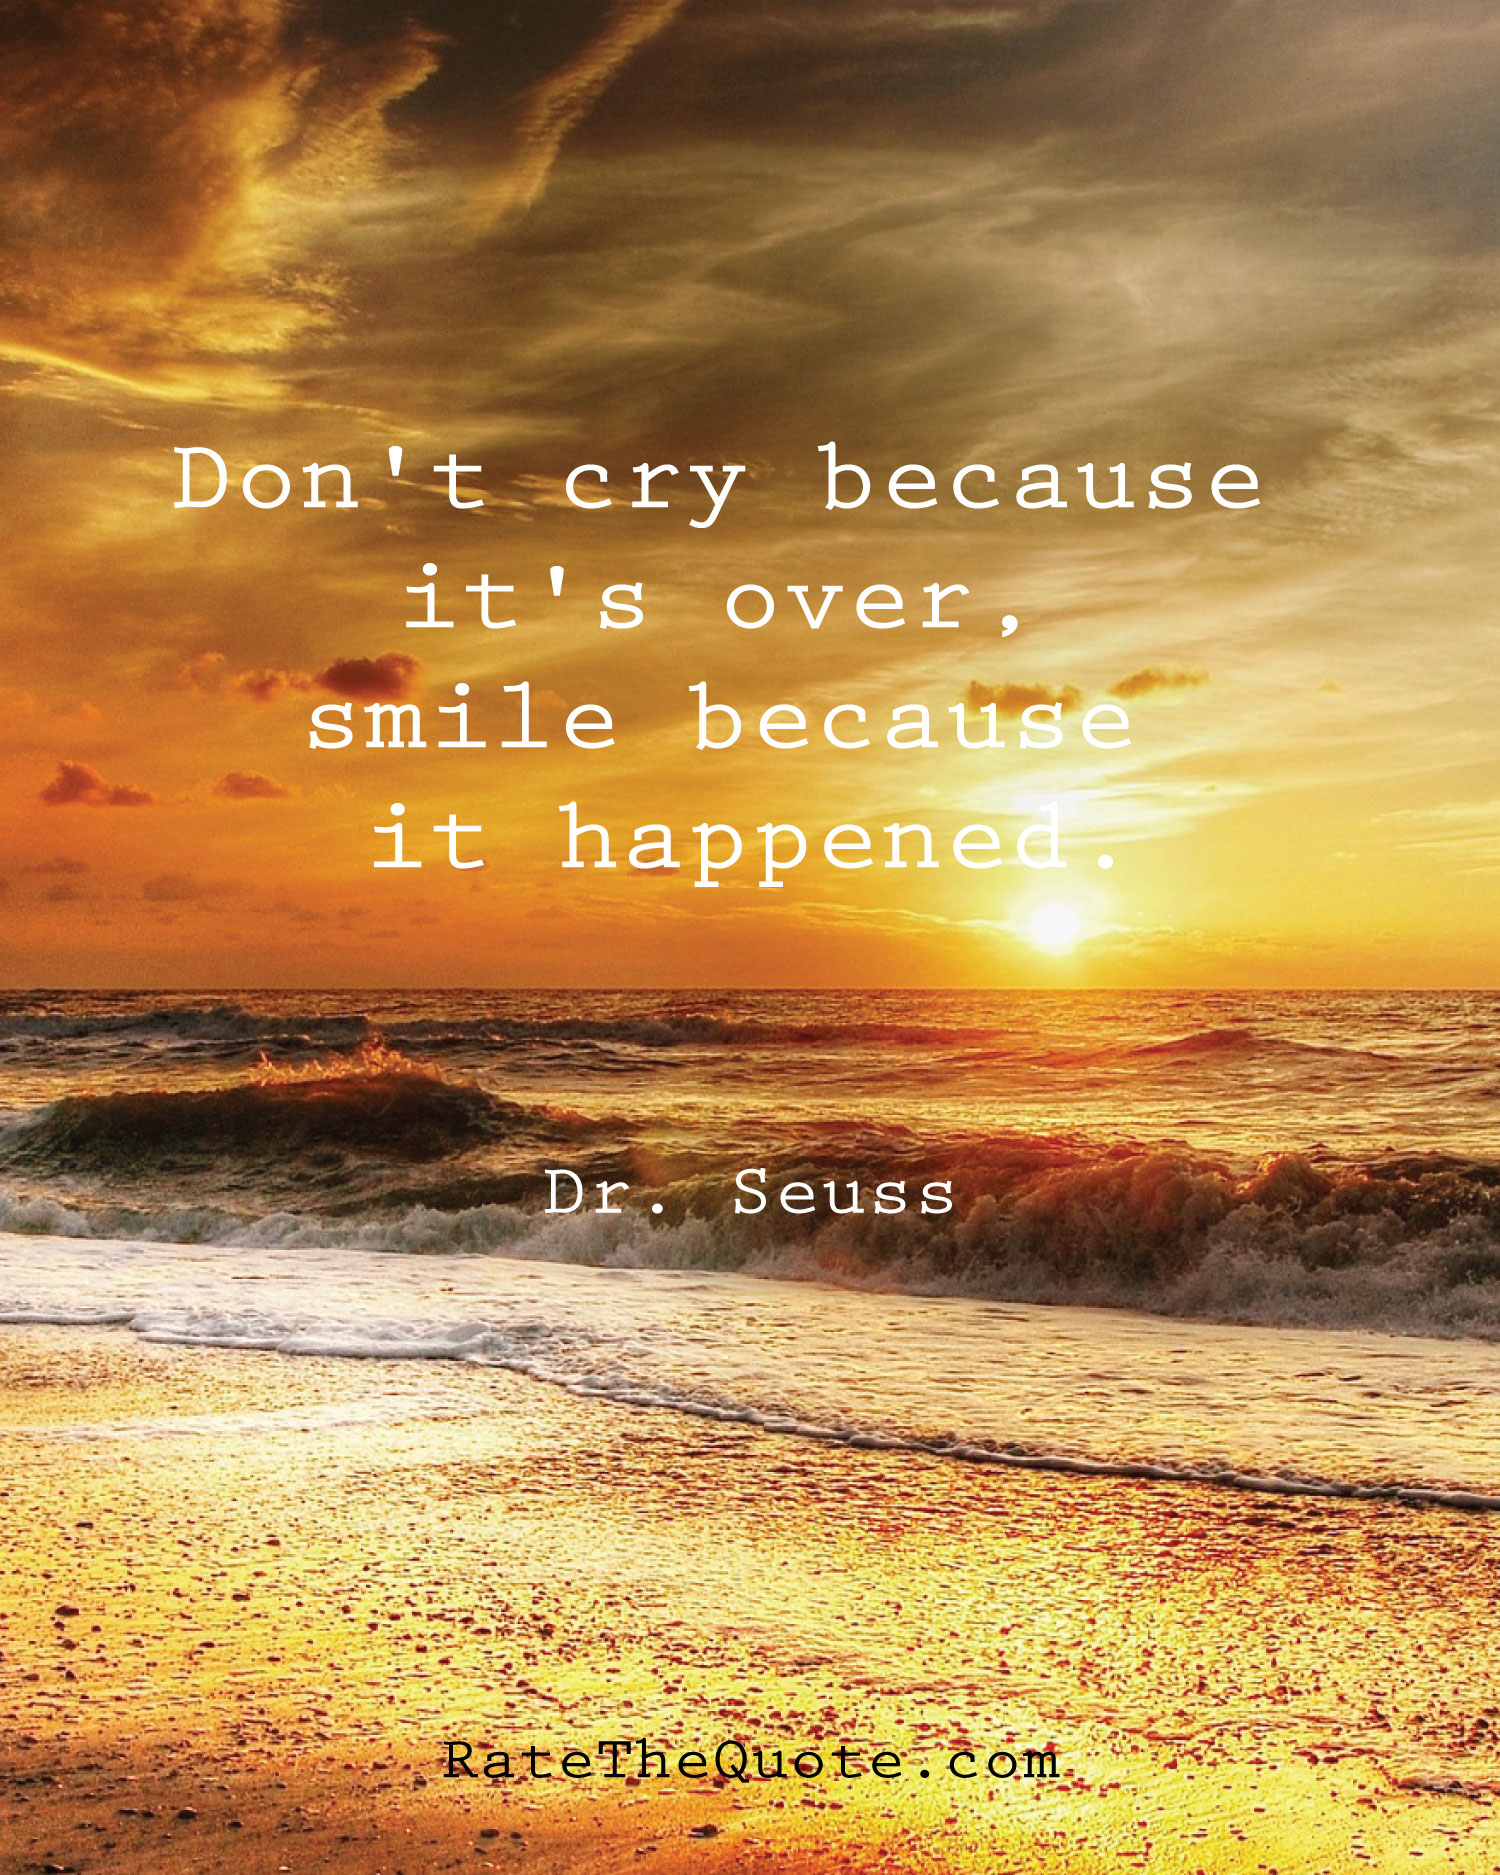 Don't cry because it's over, smile because it happened. Dr. Seuss